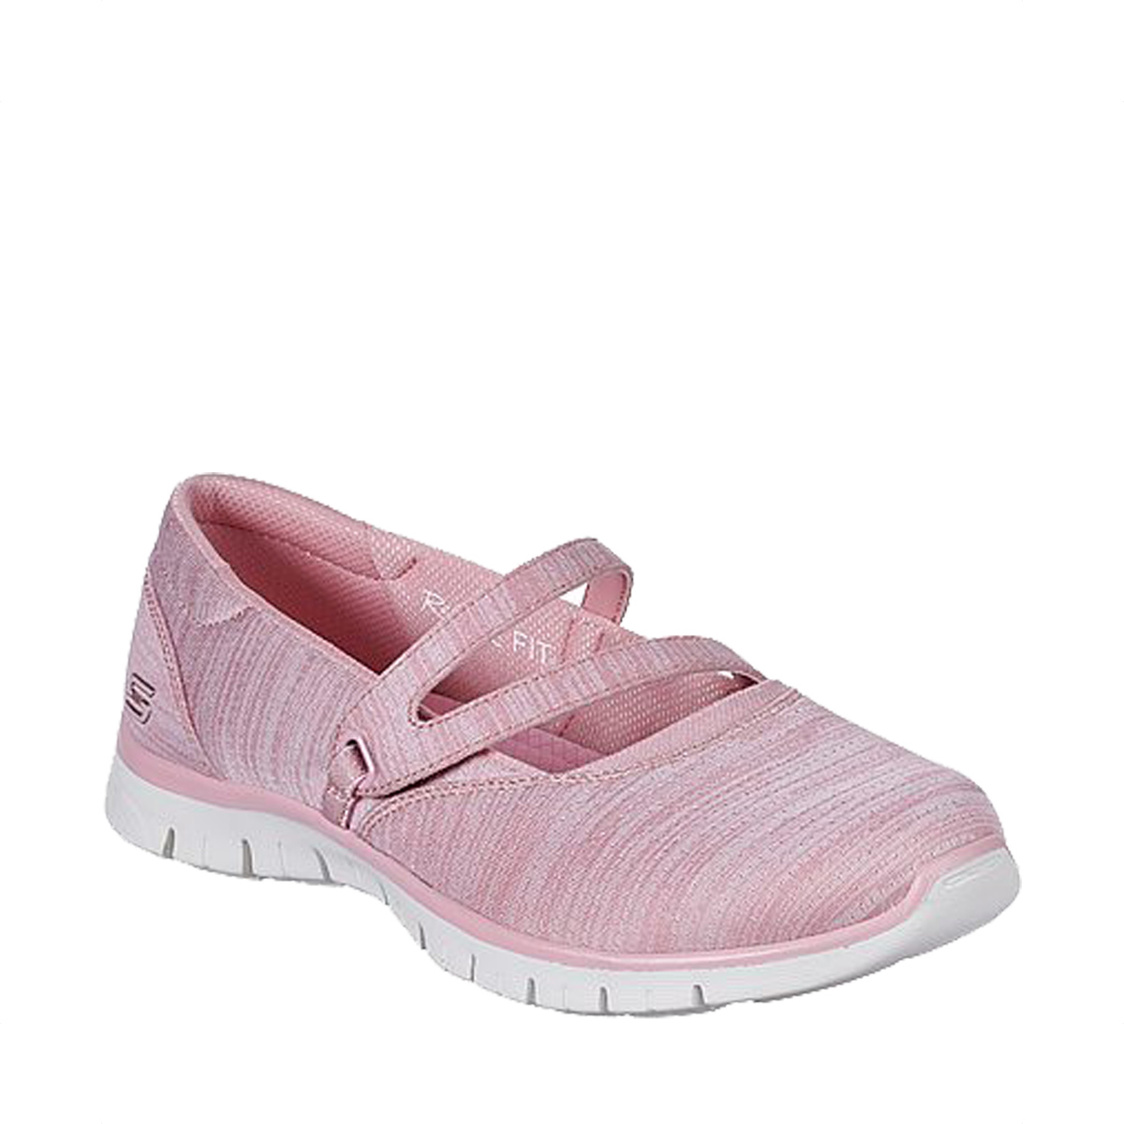 Relaxed Fit  EZ Flex Renew - Make It Count 23469 Pink